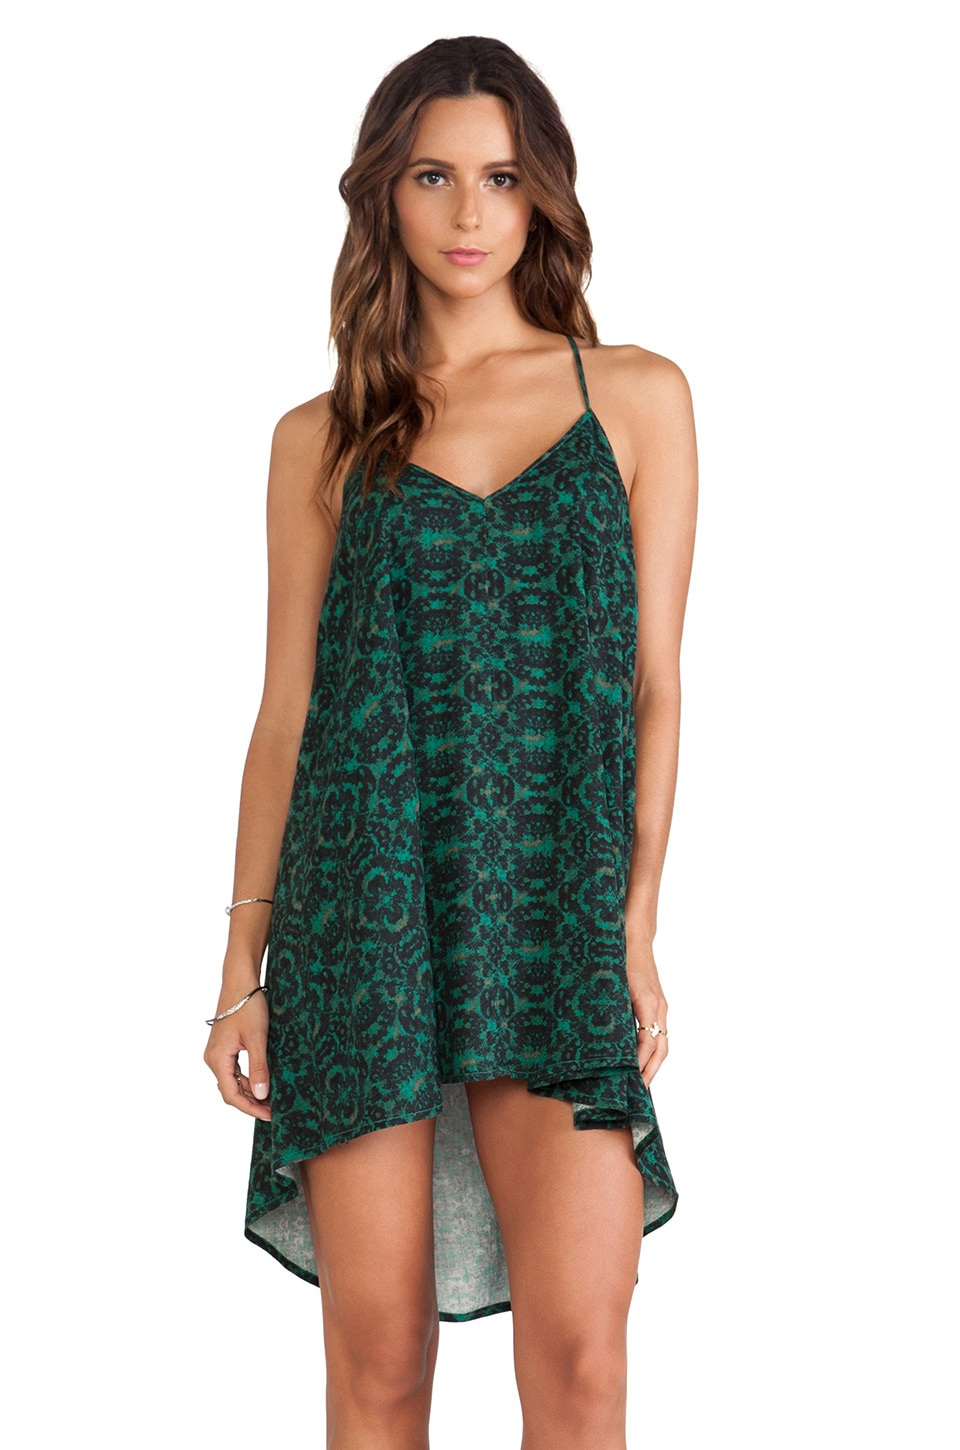 RVCA Marigold Dress in Deep Jungle